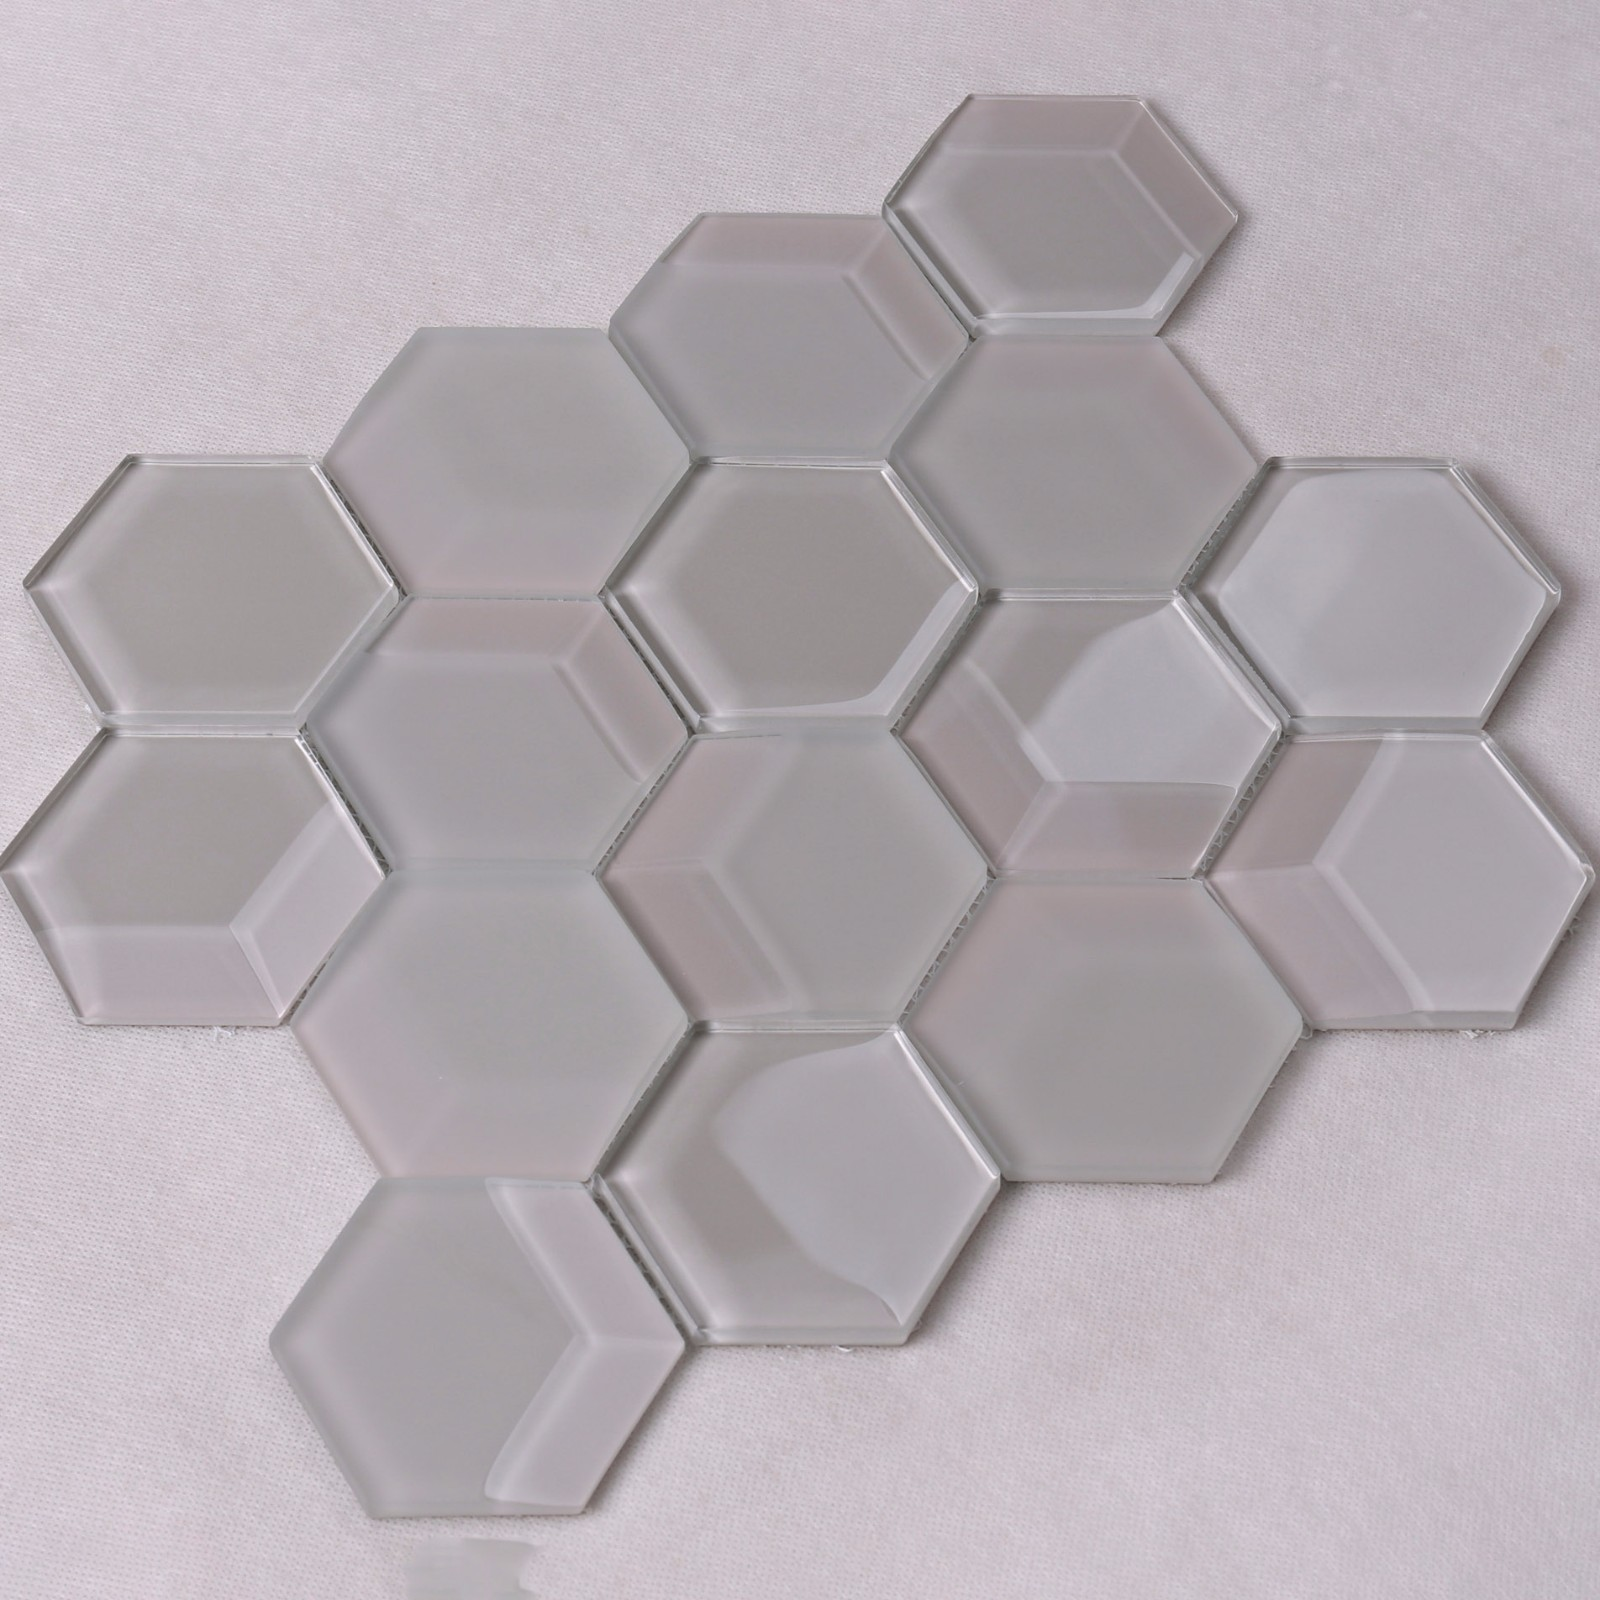 Heng Xing-Oem Green Glass Tile Manufacturer, White Glass Backsplash | Heng Xing-1